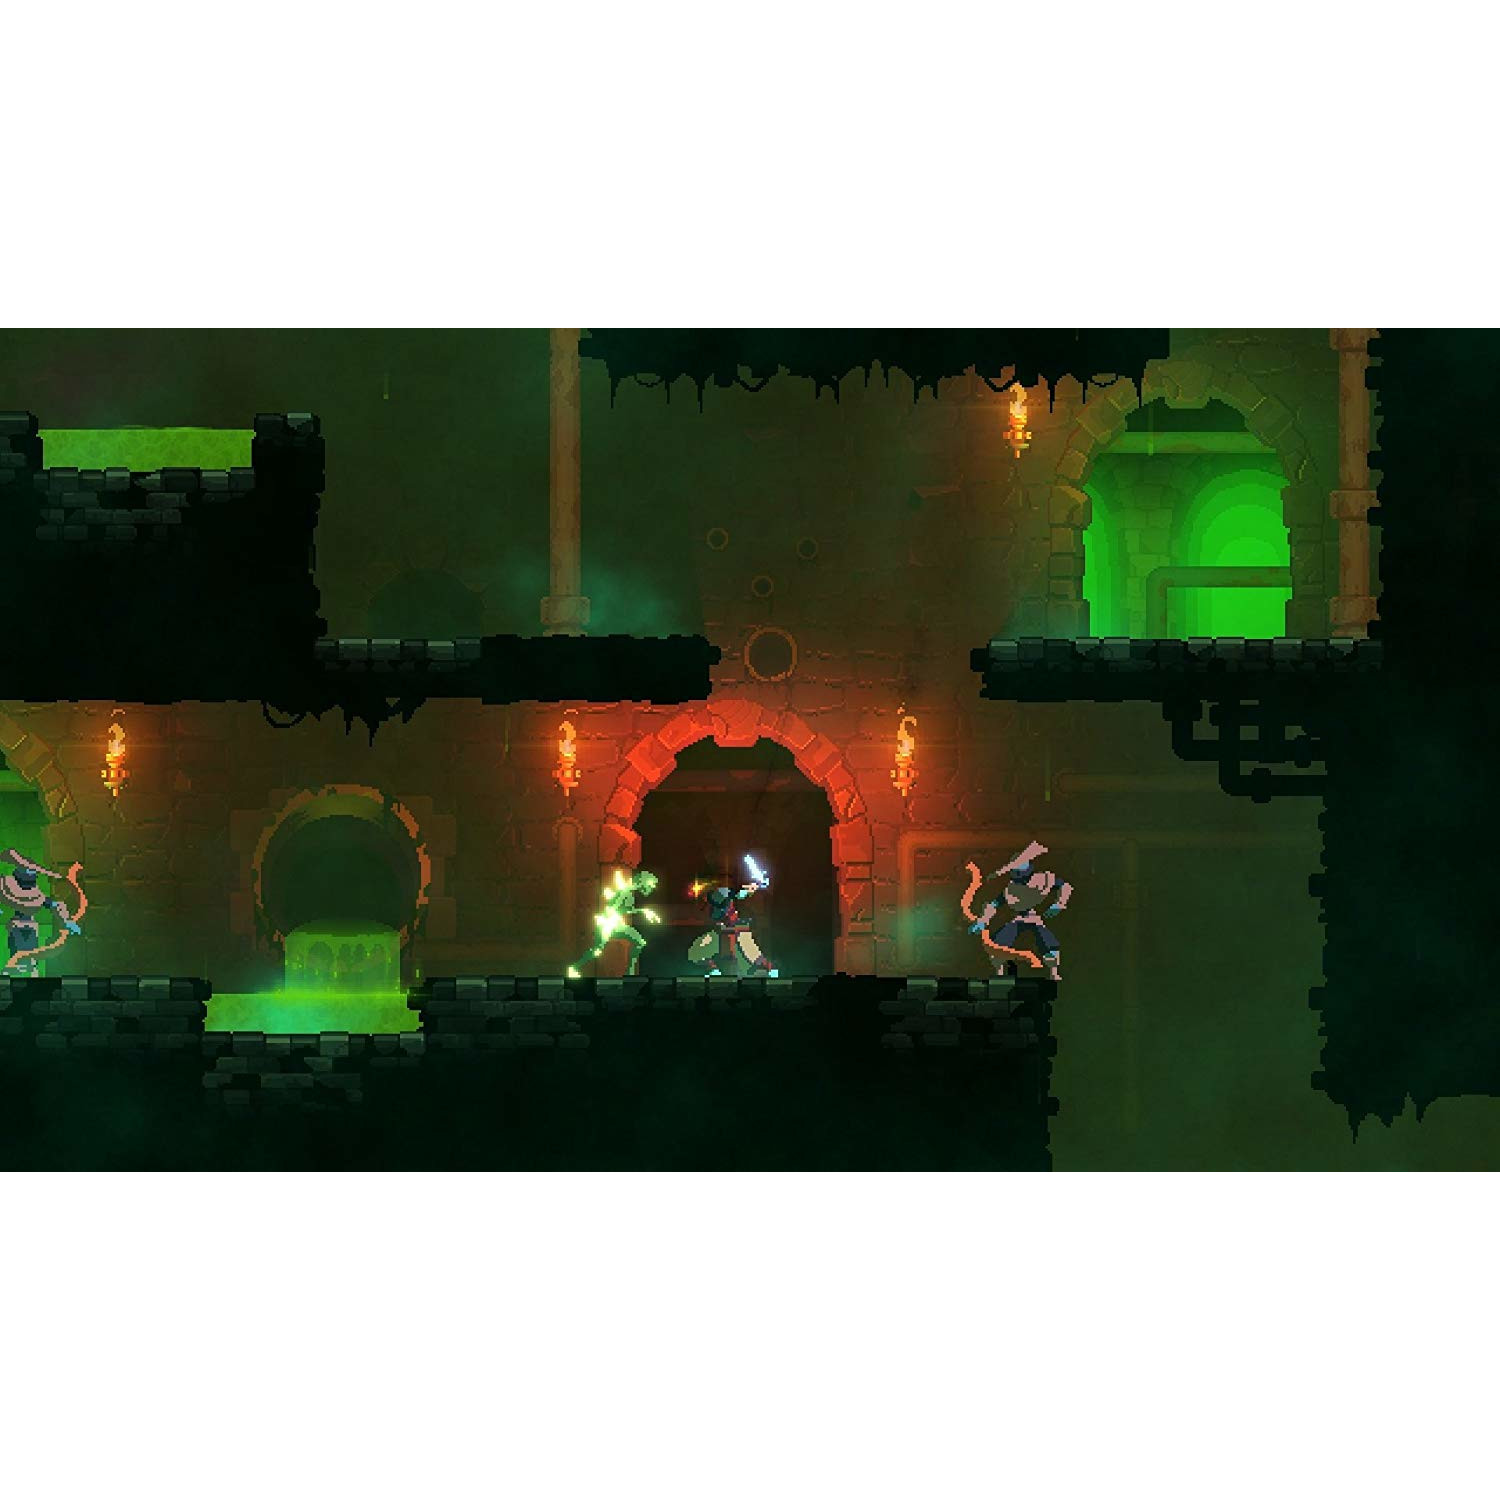 Joc Dead Cells - Action Game of the Year (EU) pentru PlayStation 4 1